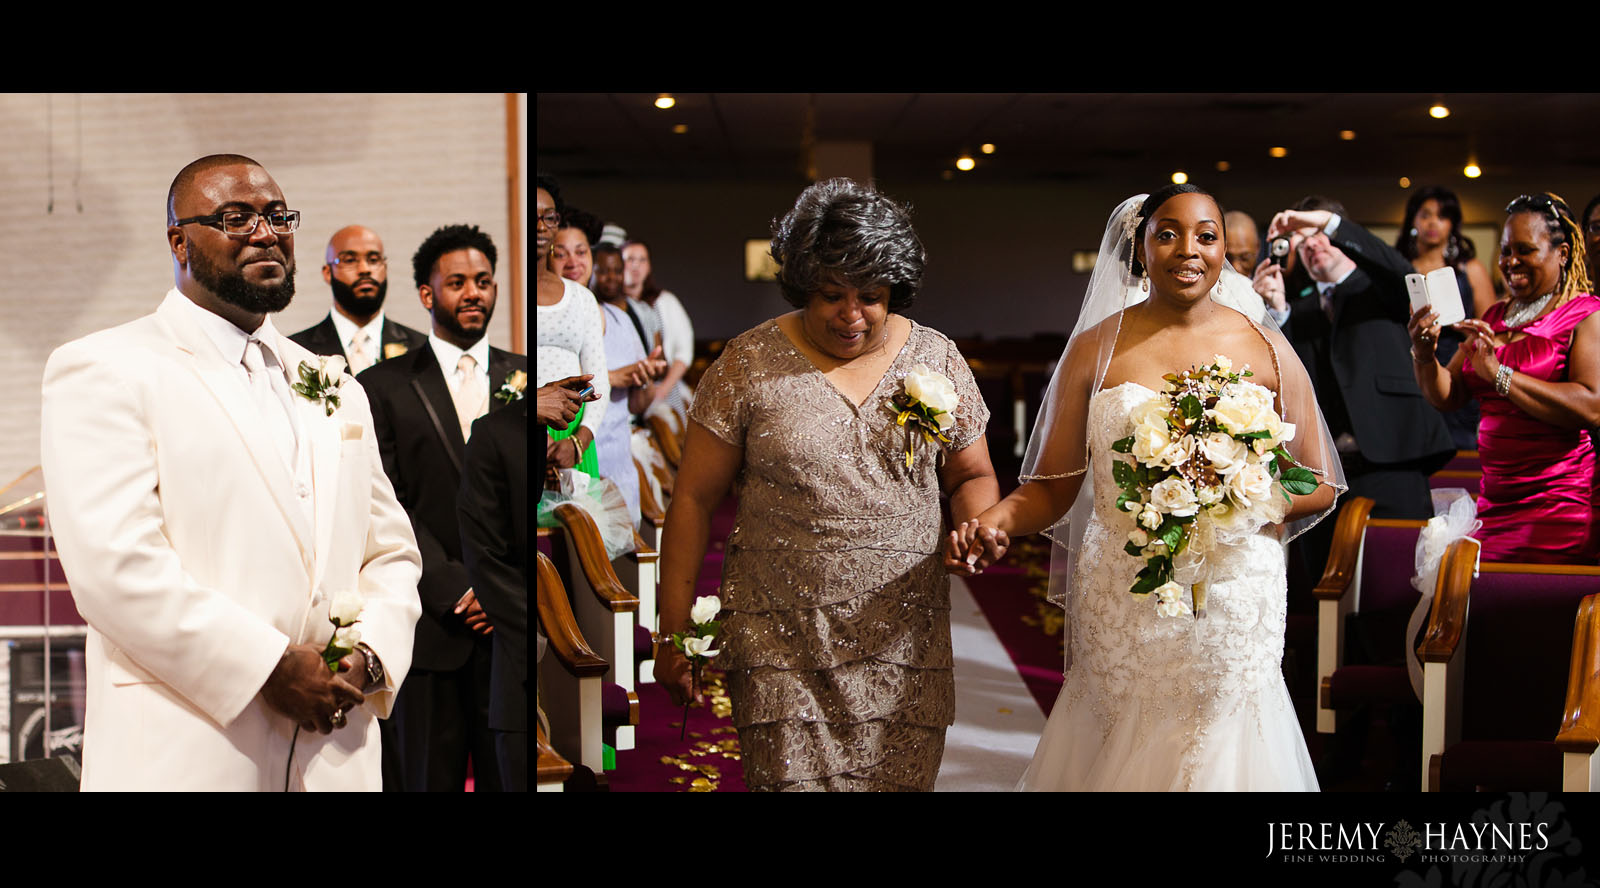 mt-olive-missionary-baptist-church-wedding-ceremony-photos-indianapolis.jpg